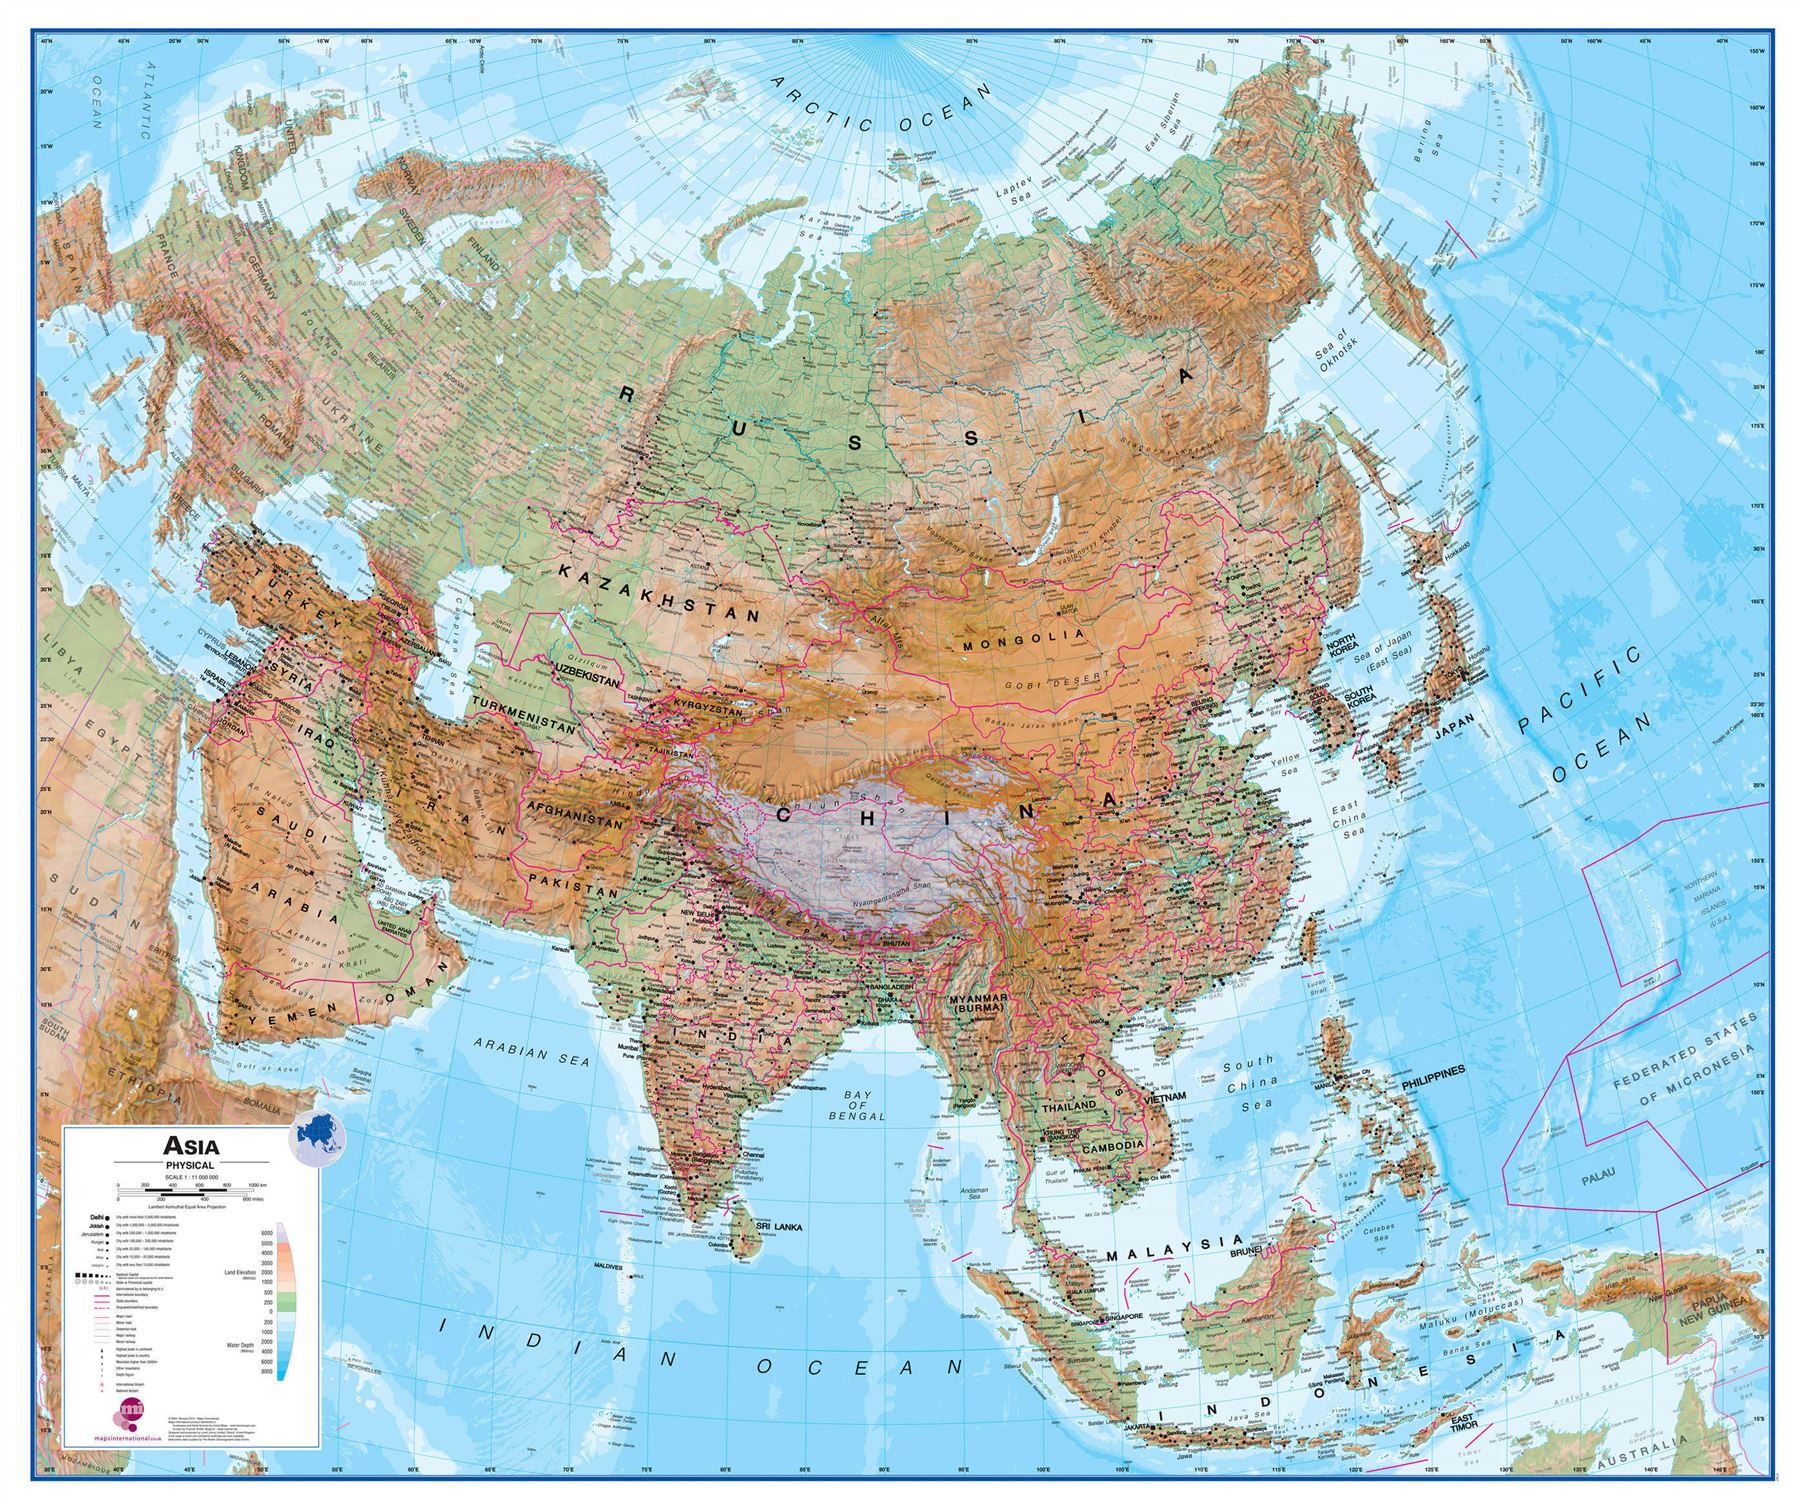 Asia Physical Map Poster Print Art Map Rollerblind Acrylic - Asia physical map